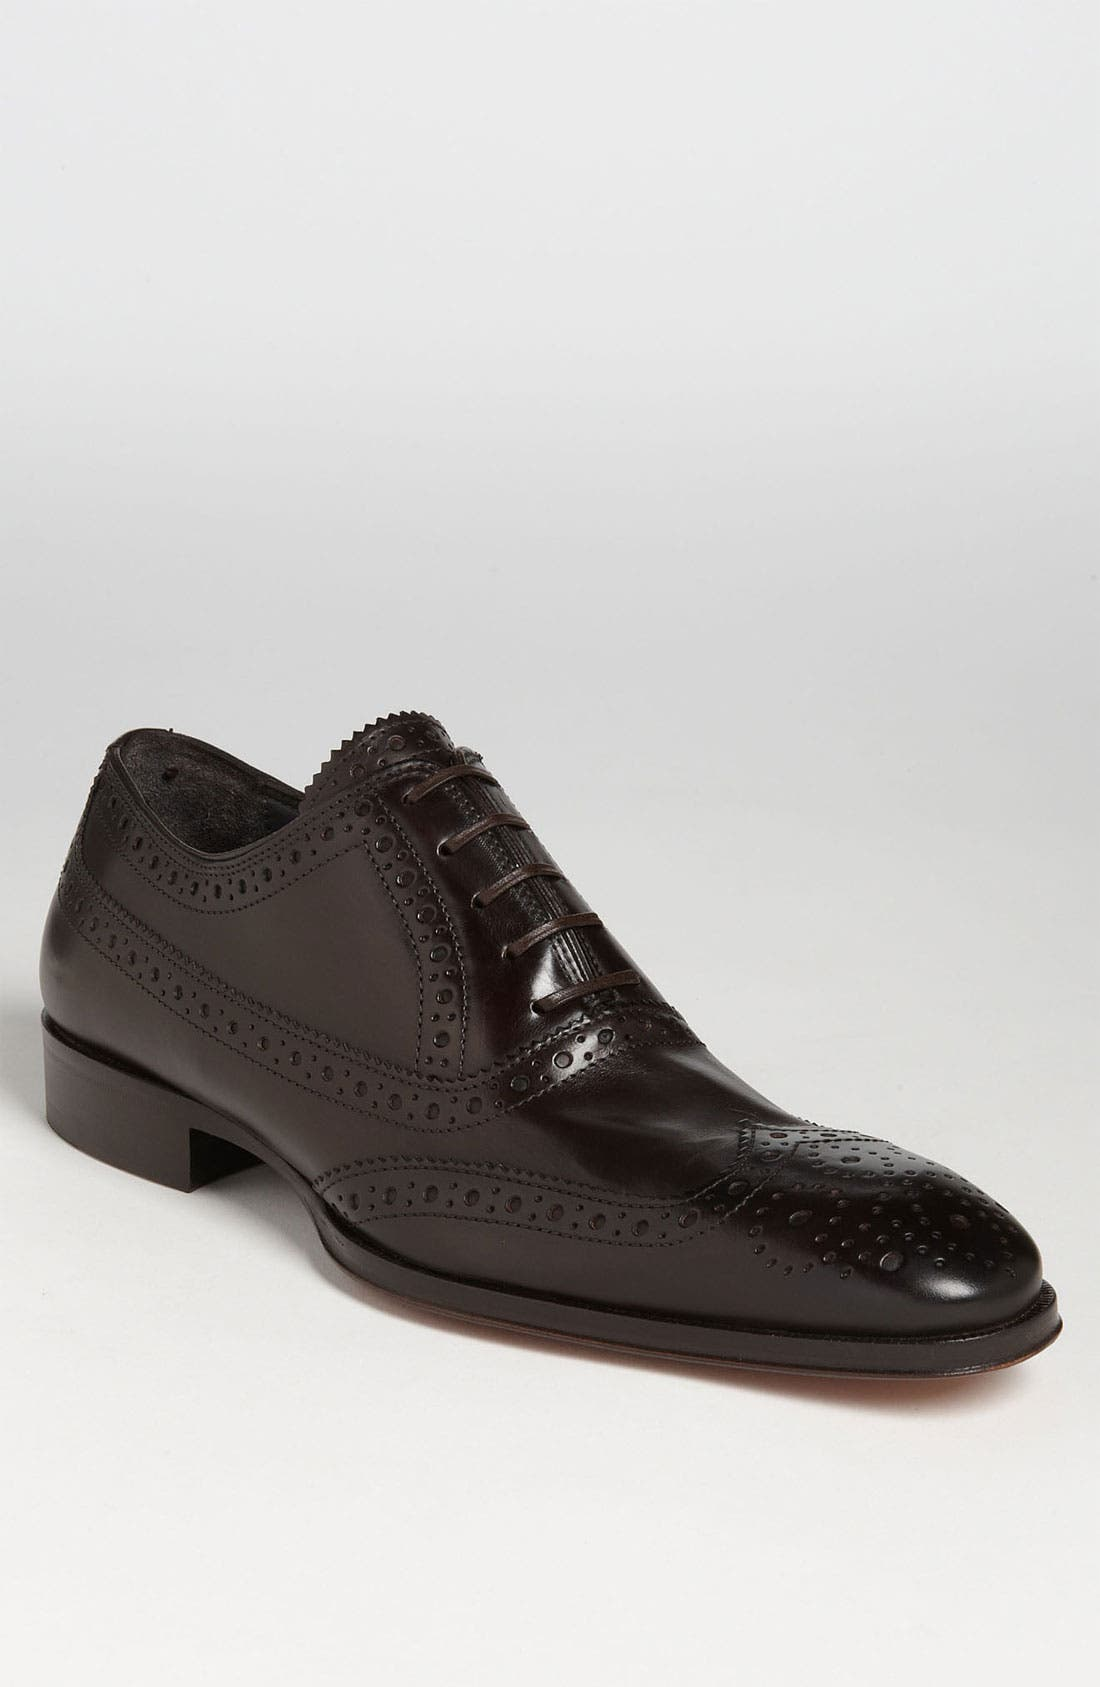 'Windsor' Wingtip Oxford,                         Main,                         color, 209